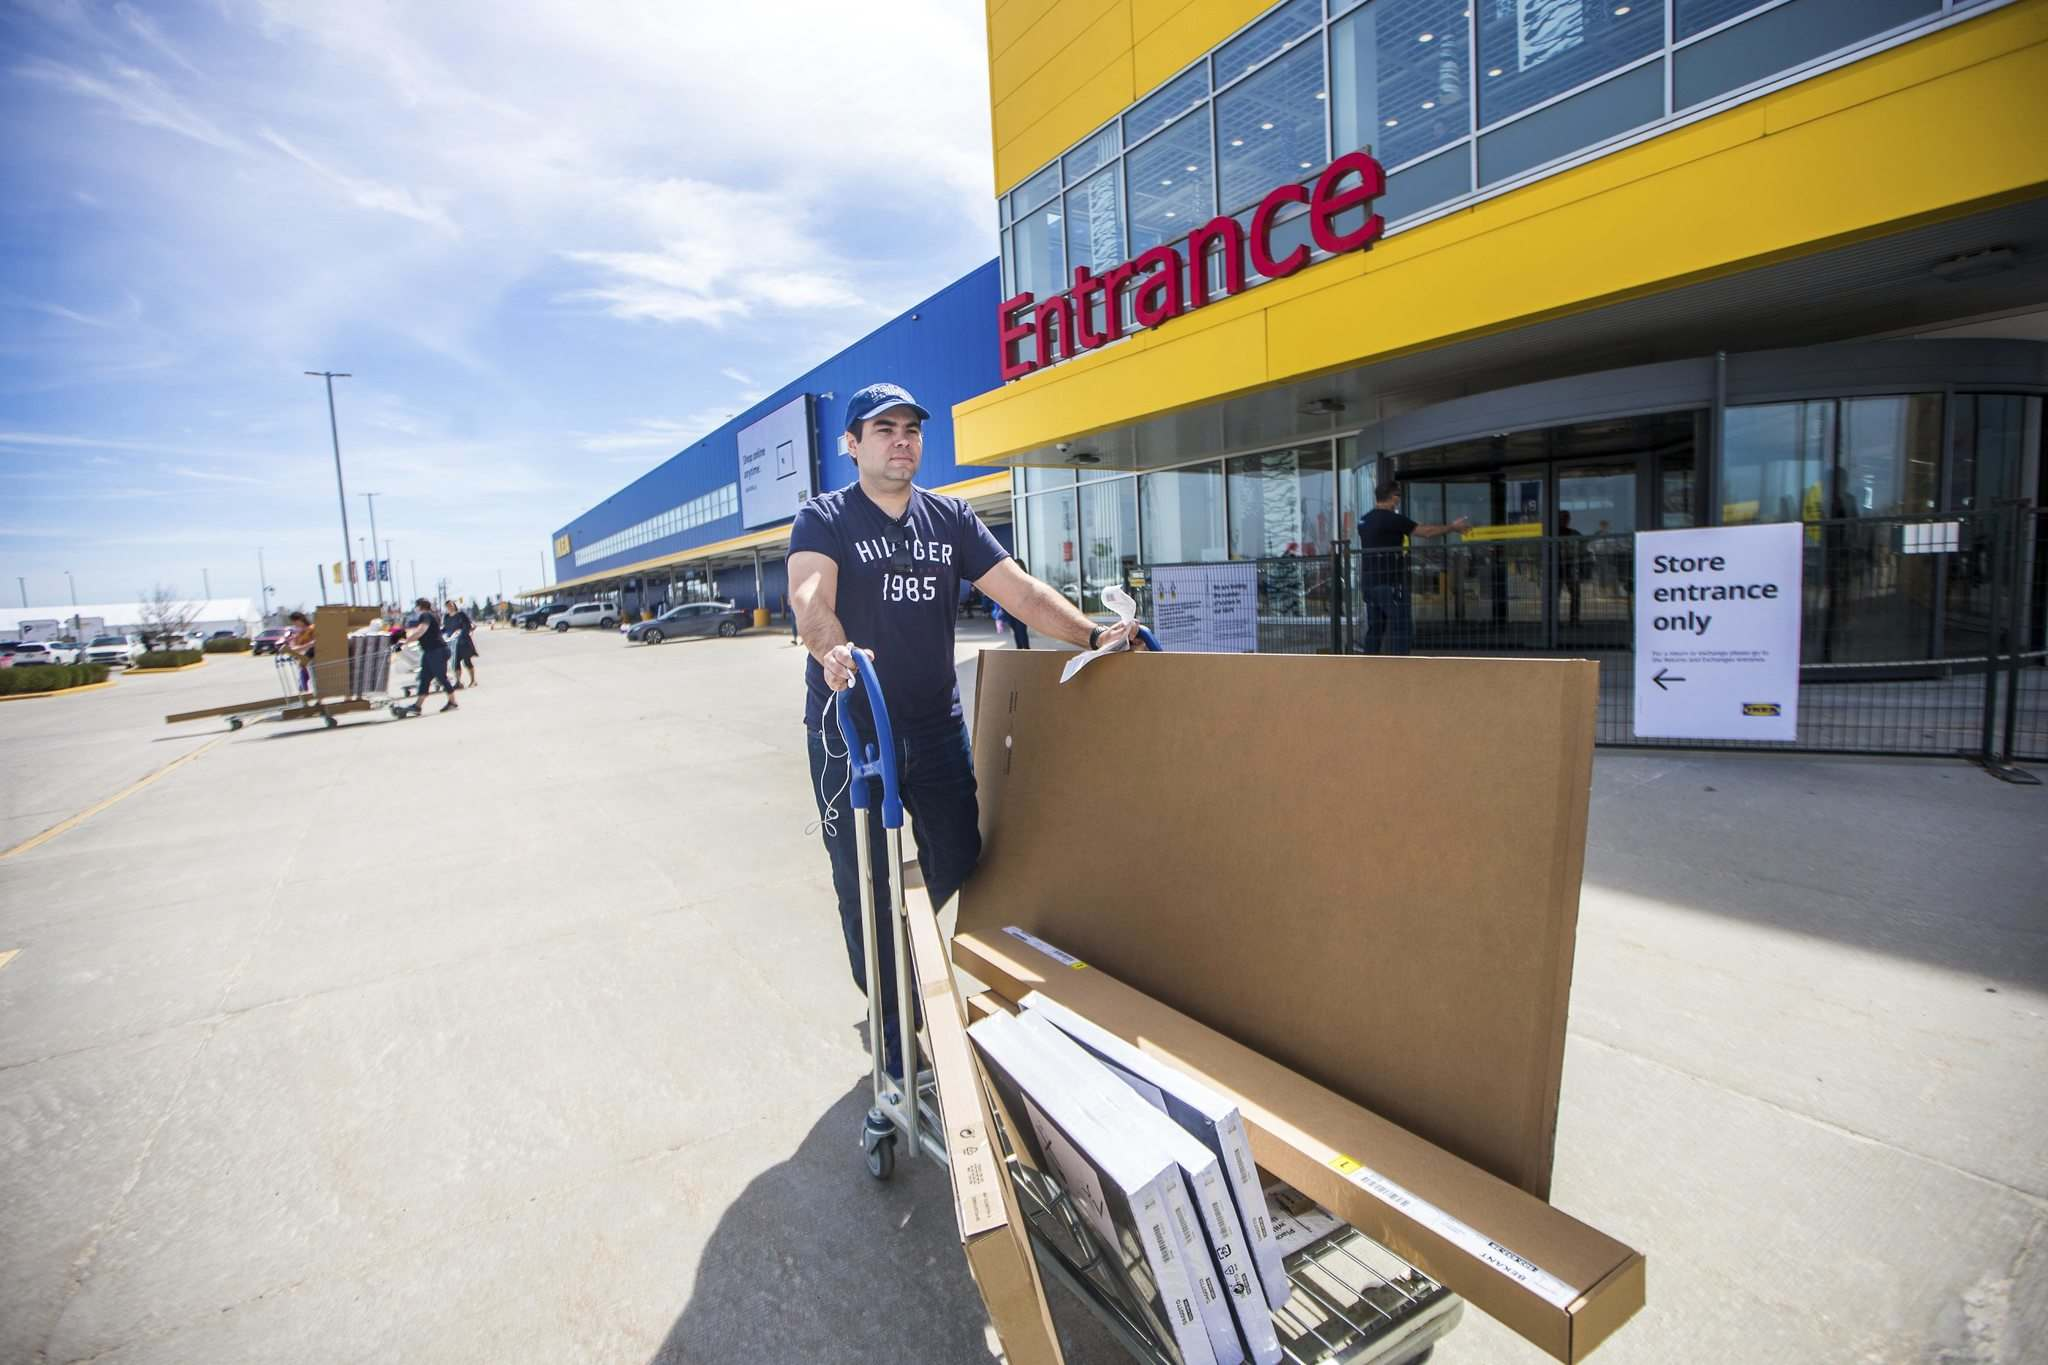 Marcelo Matos said he tried ordering products online after the IKEA closed, but found it would take up to six weeks to receive them.